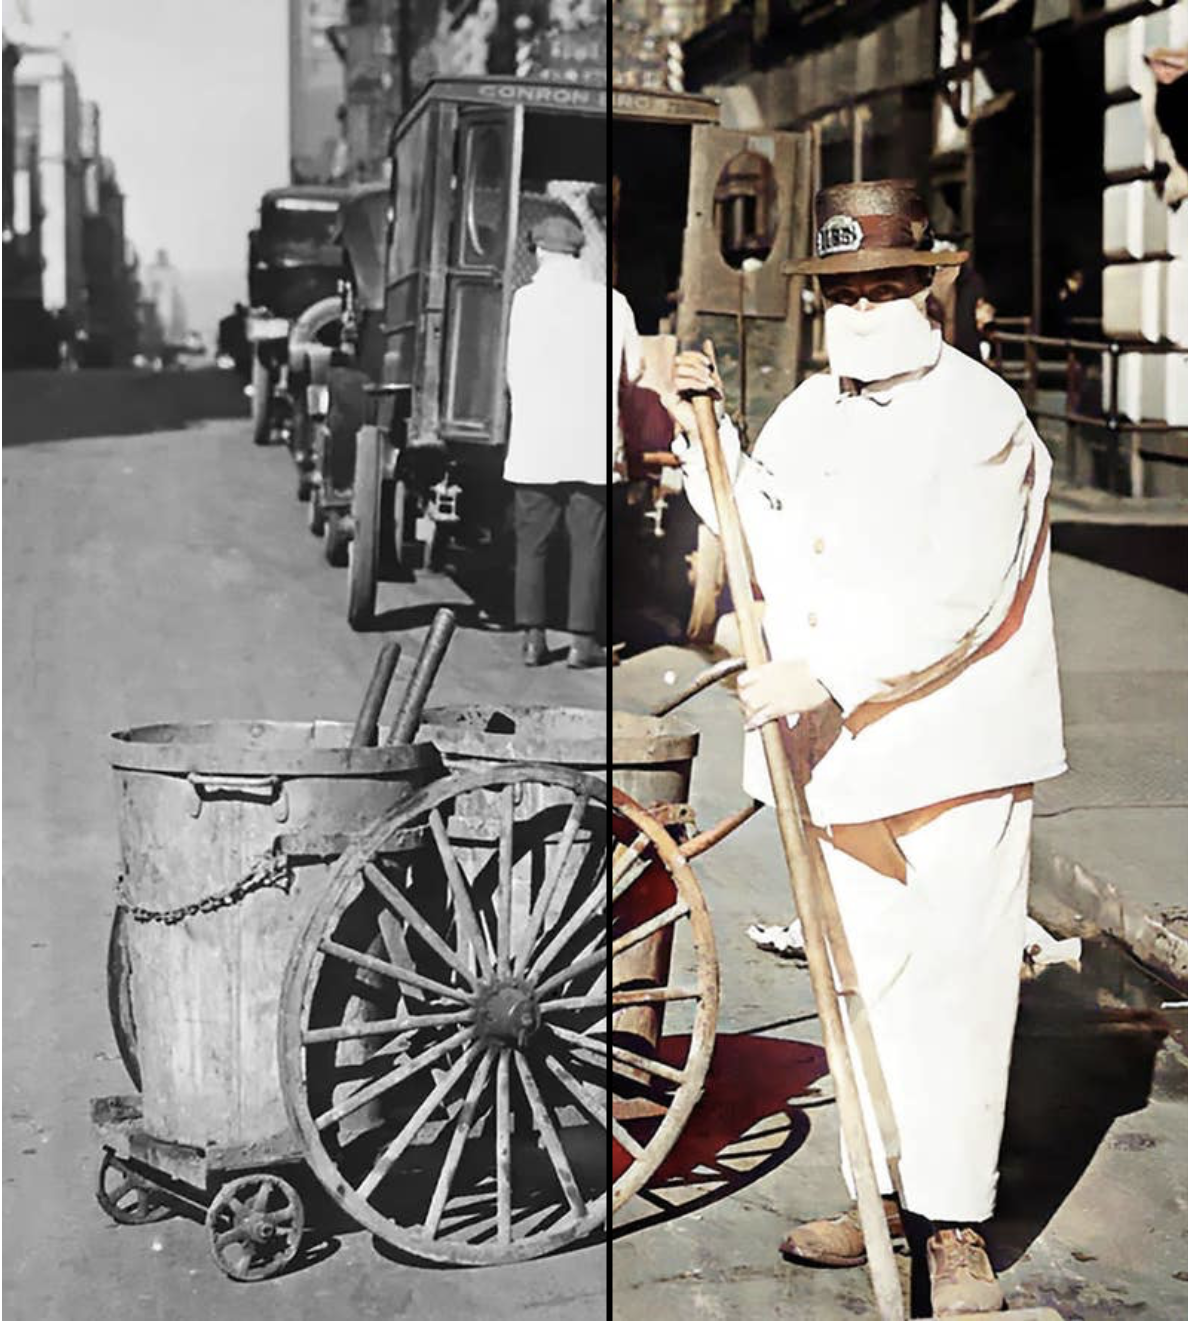 A man in white with two garbage cans on wheels in an old picture